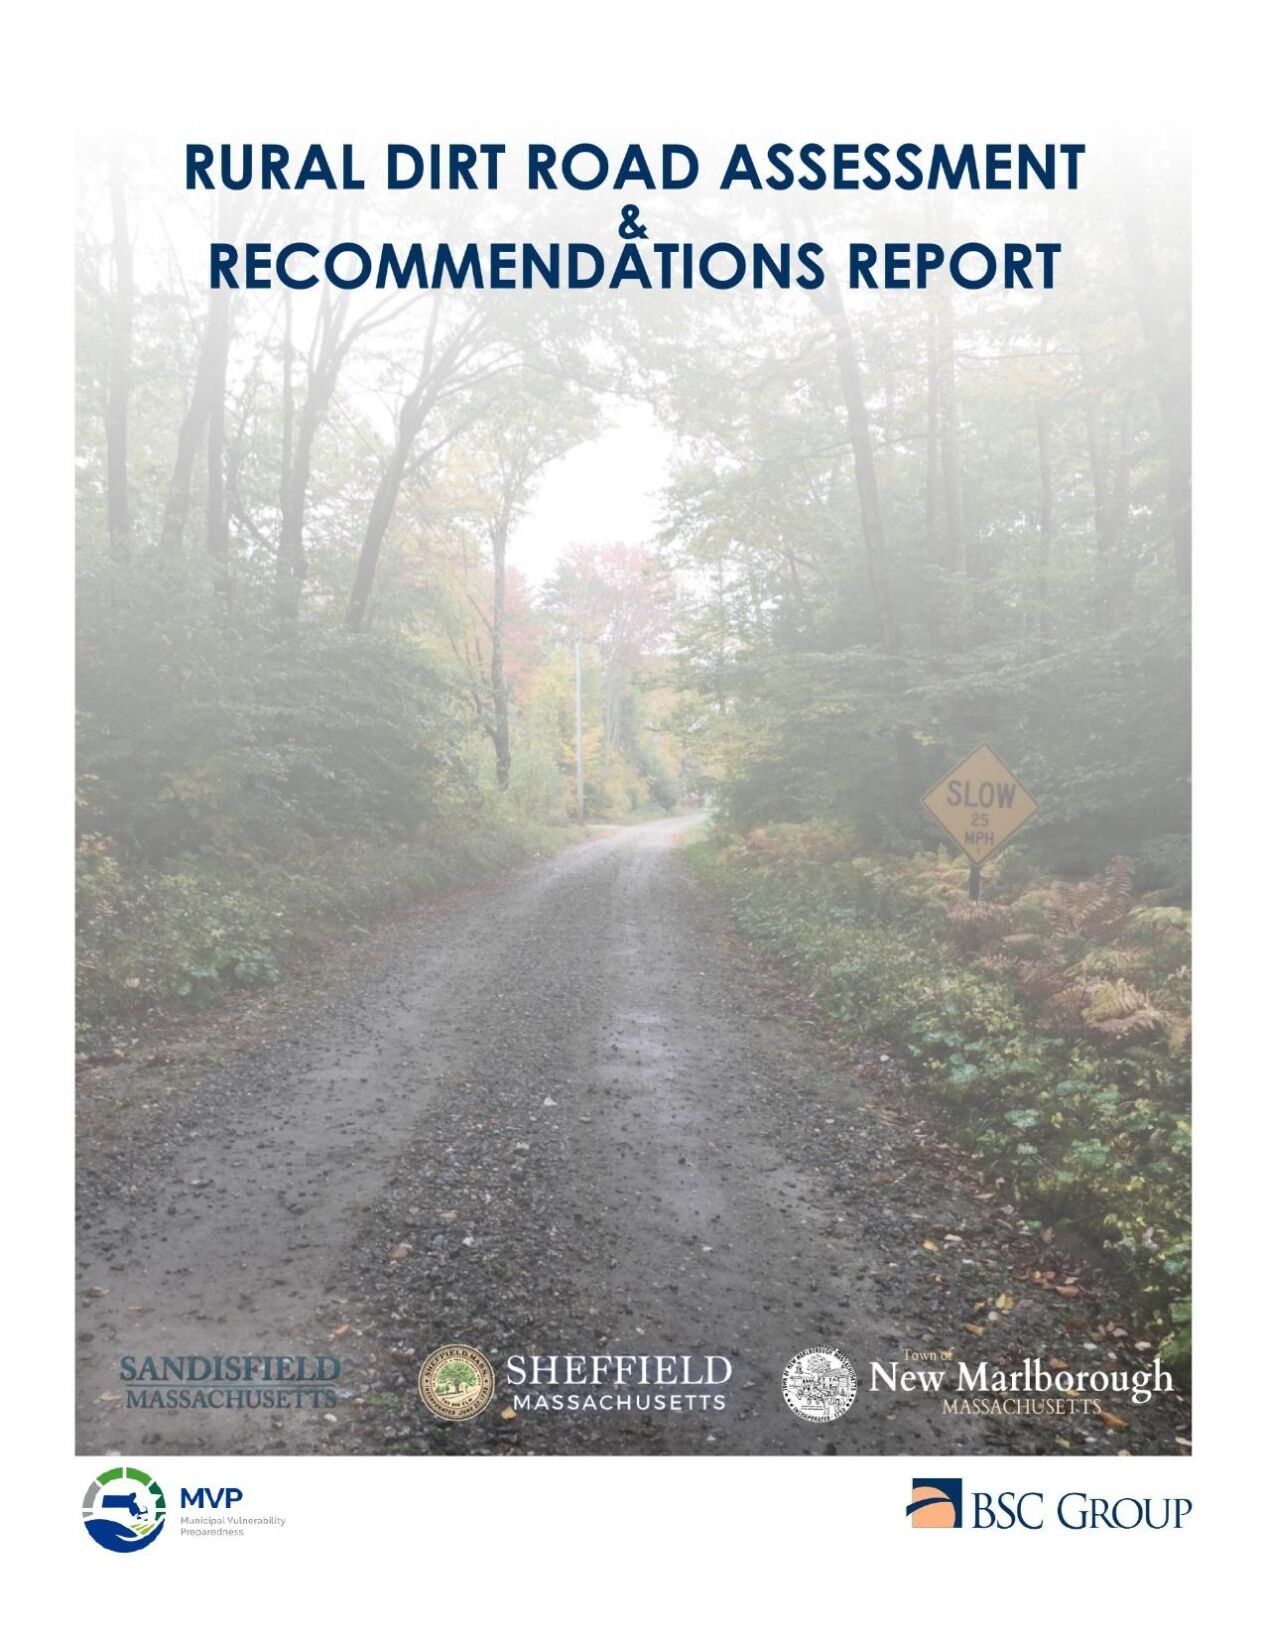 Rural Dirt Roads Assessment and Recommendations